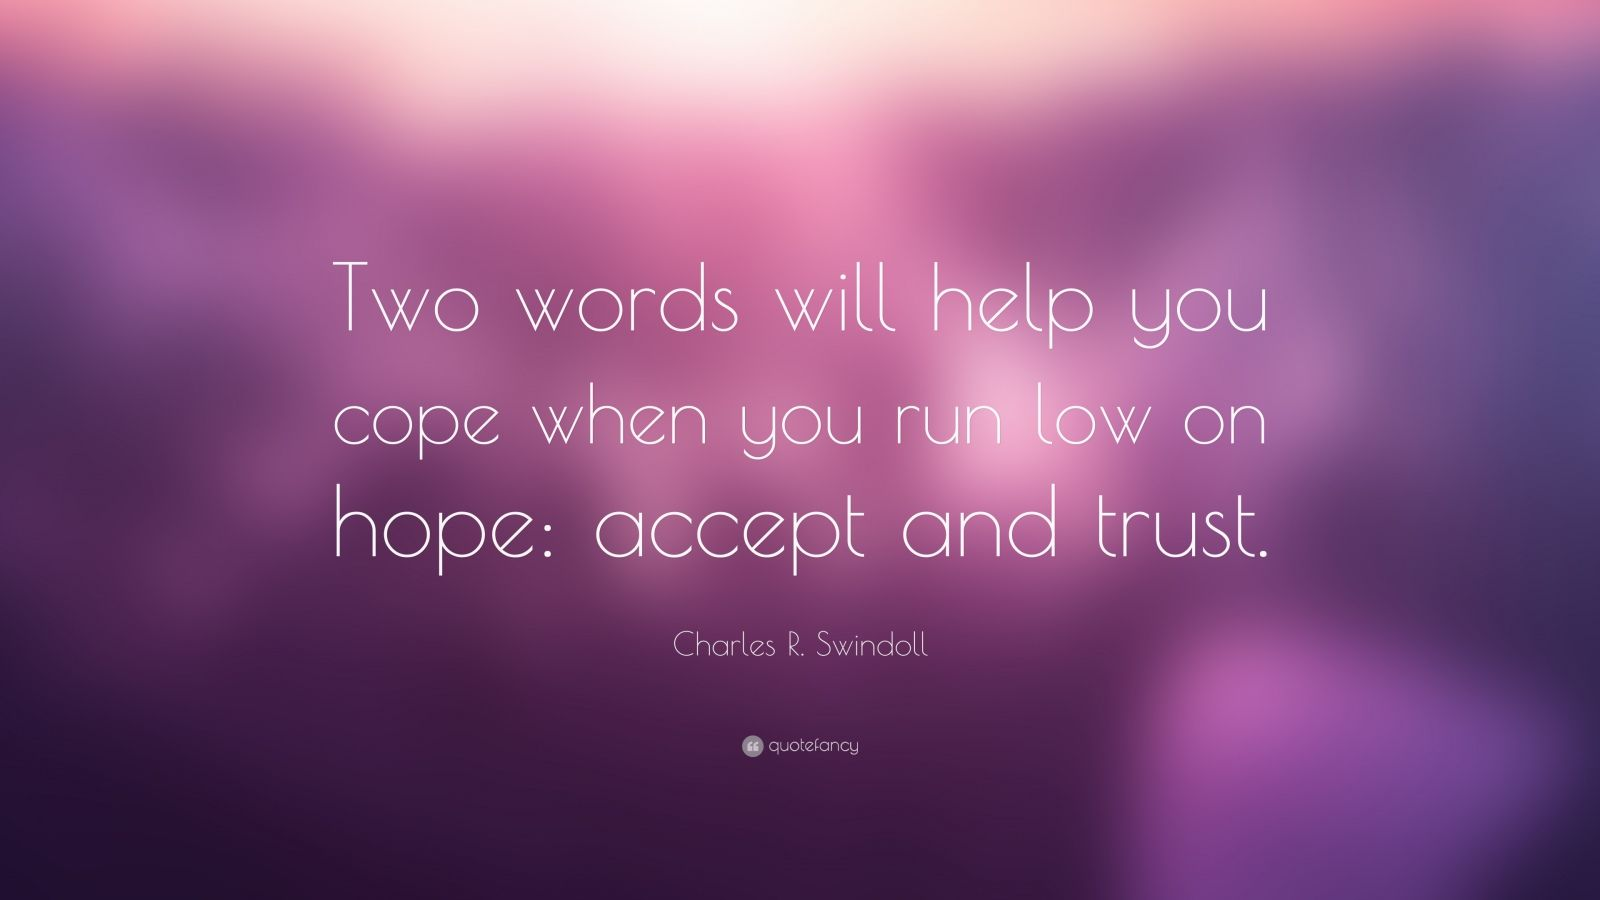 """Charles R. Swindoll Quote: """"Two words will help you cope when you run low on hope: accept and trust."""""""